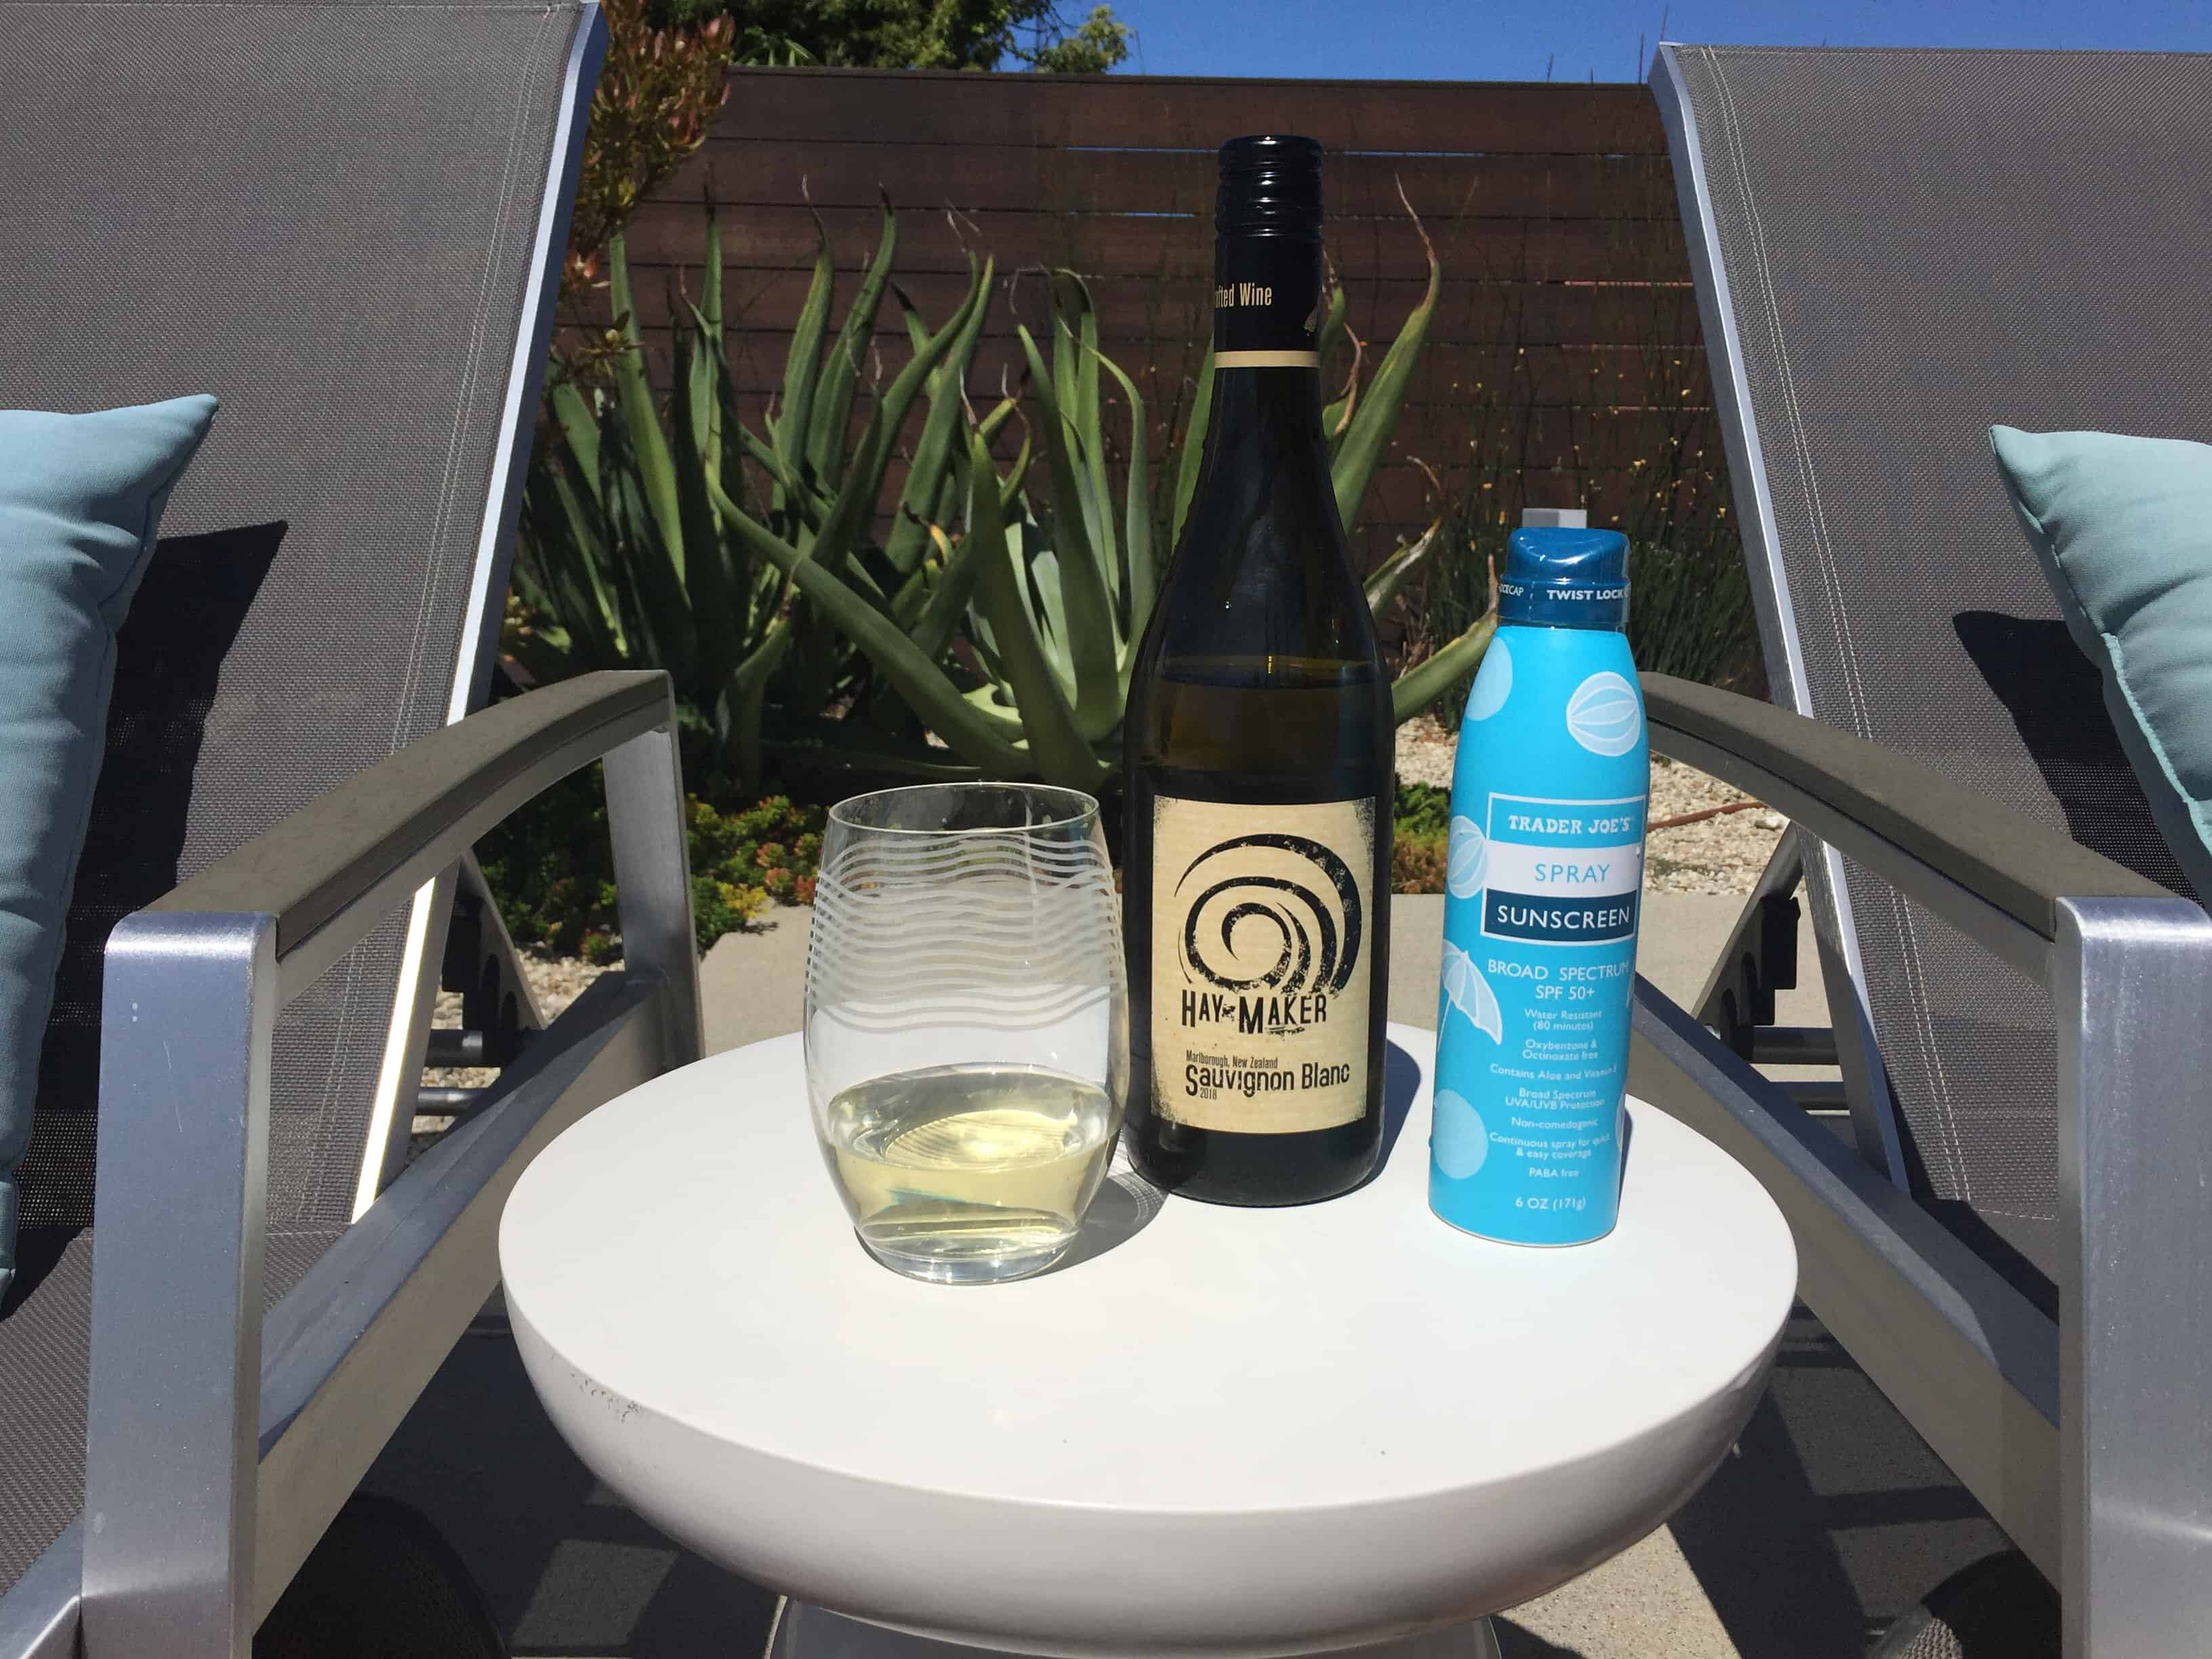 Bottle and glass of Hay Maker New Zealand Sauvignon Blanc from Trader Joe's - with sunscreen spray